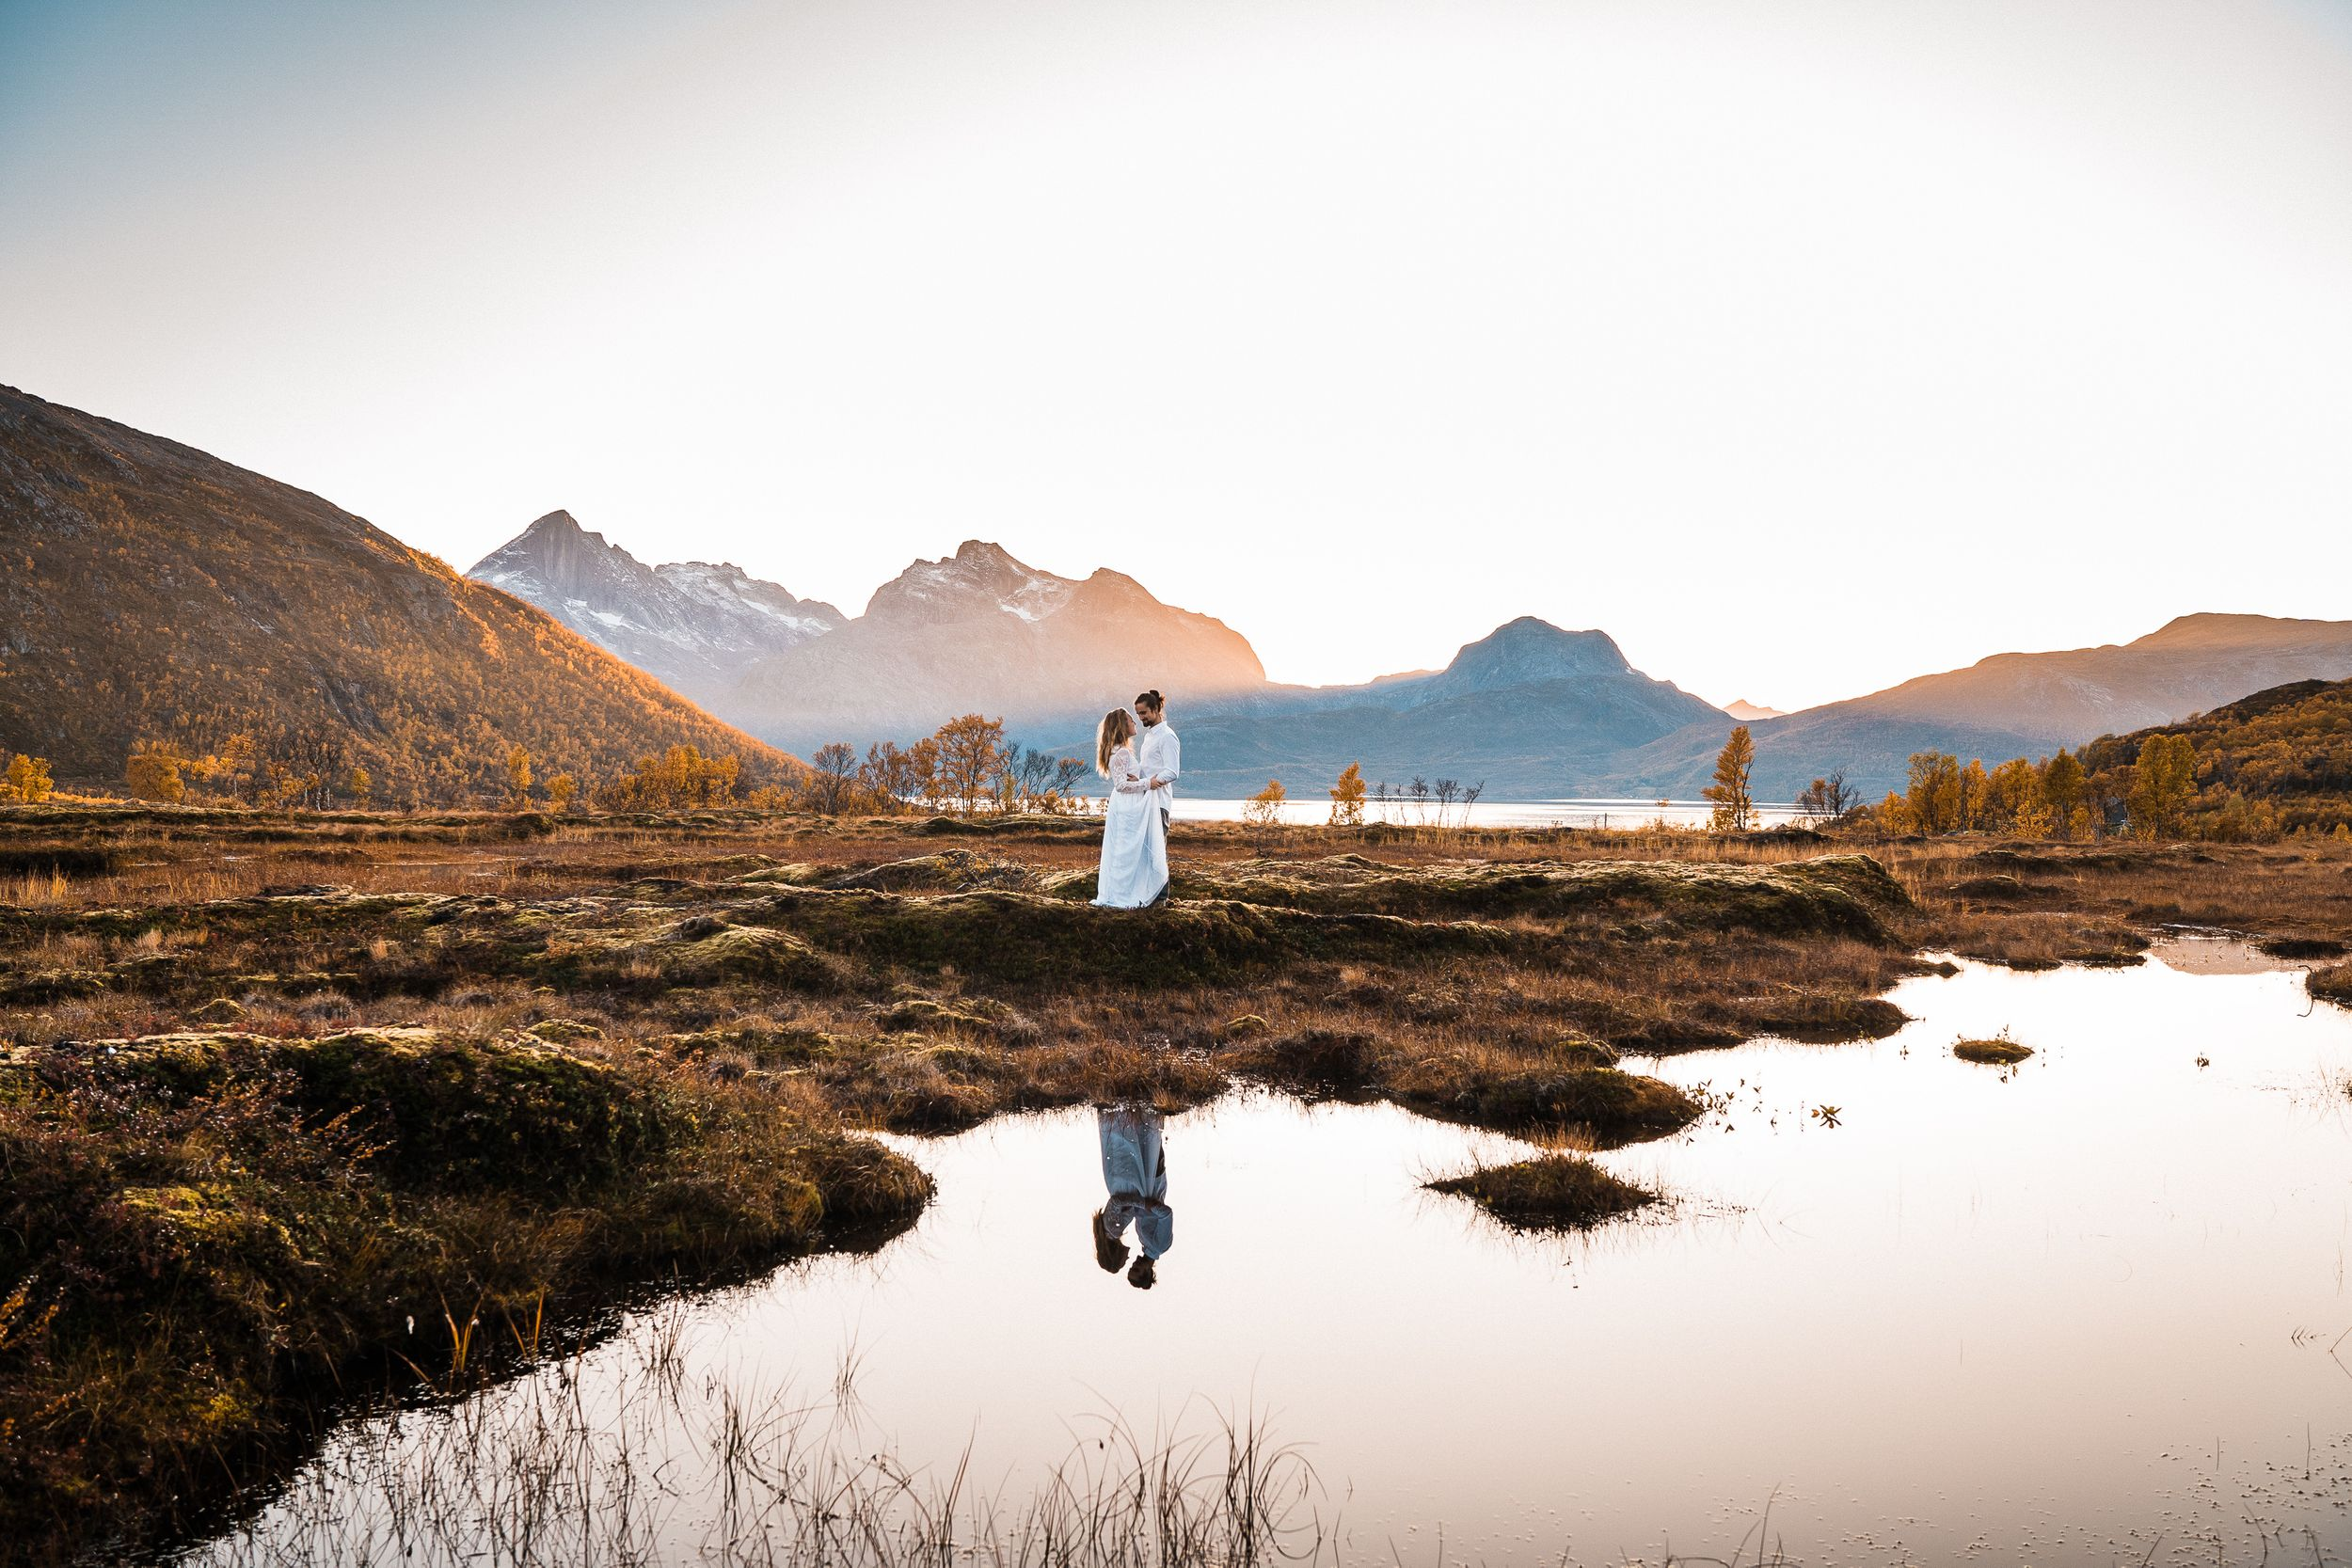 Photographer Maria Karlsson Swedish Adventure Elopement Couple and mountains in tromsö norway norge Bridal gown